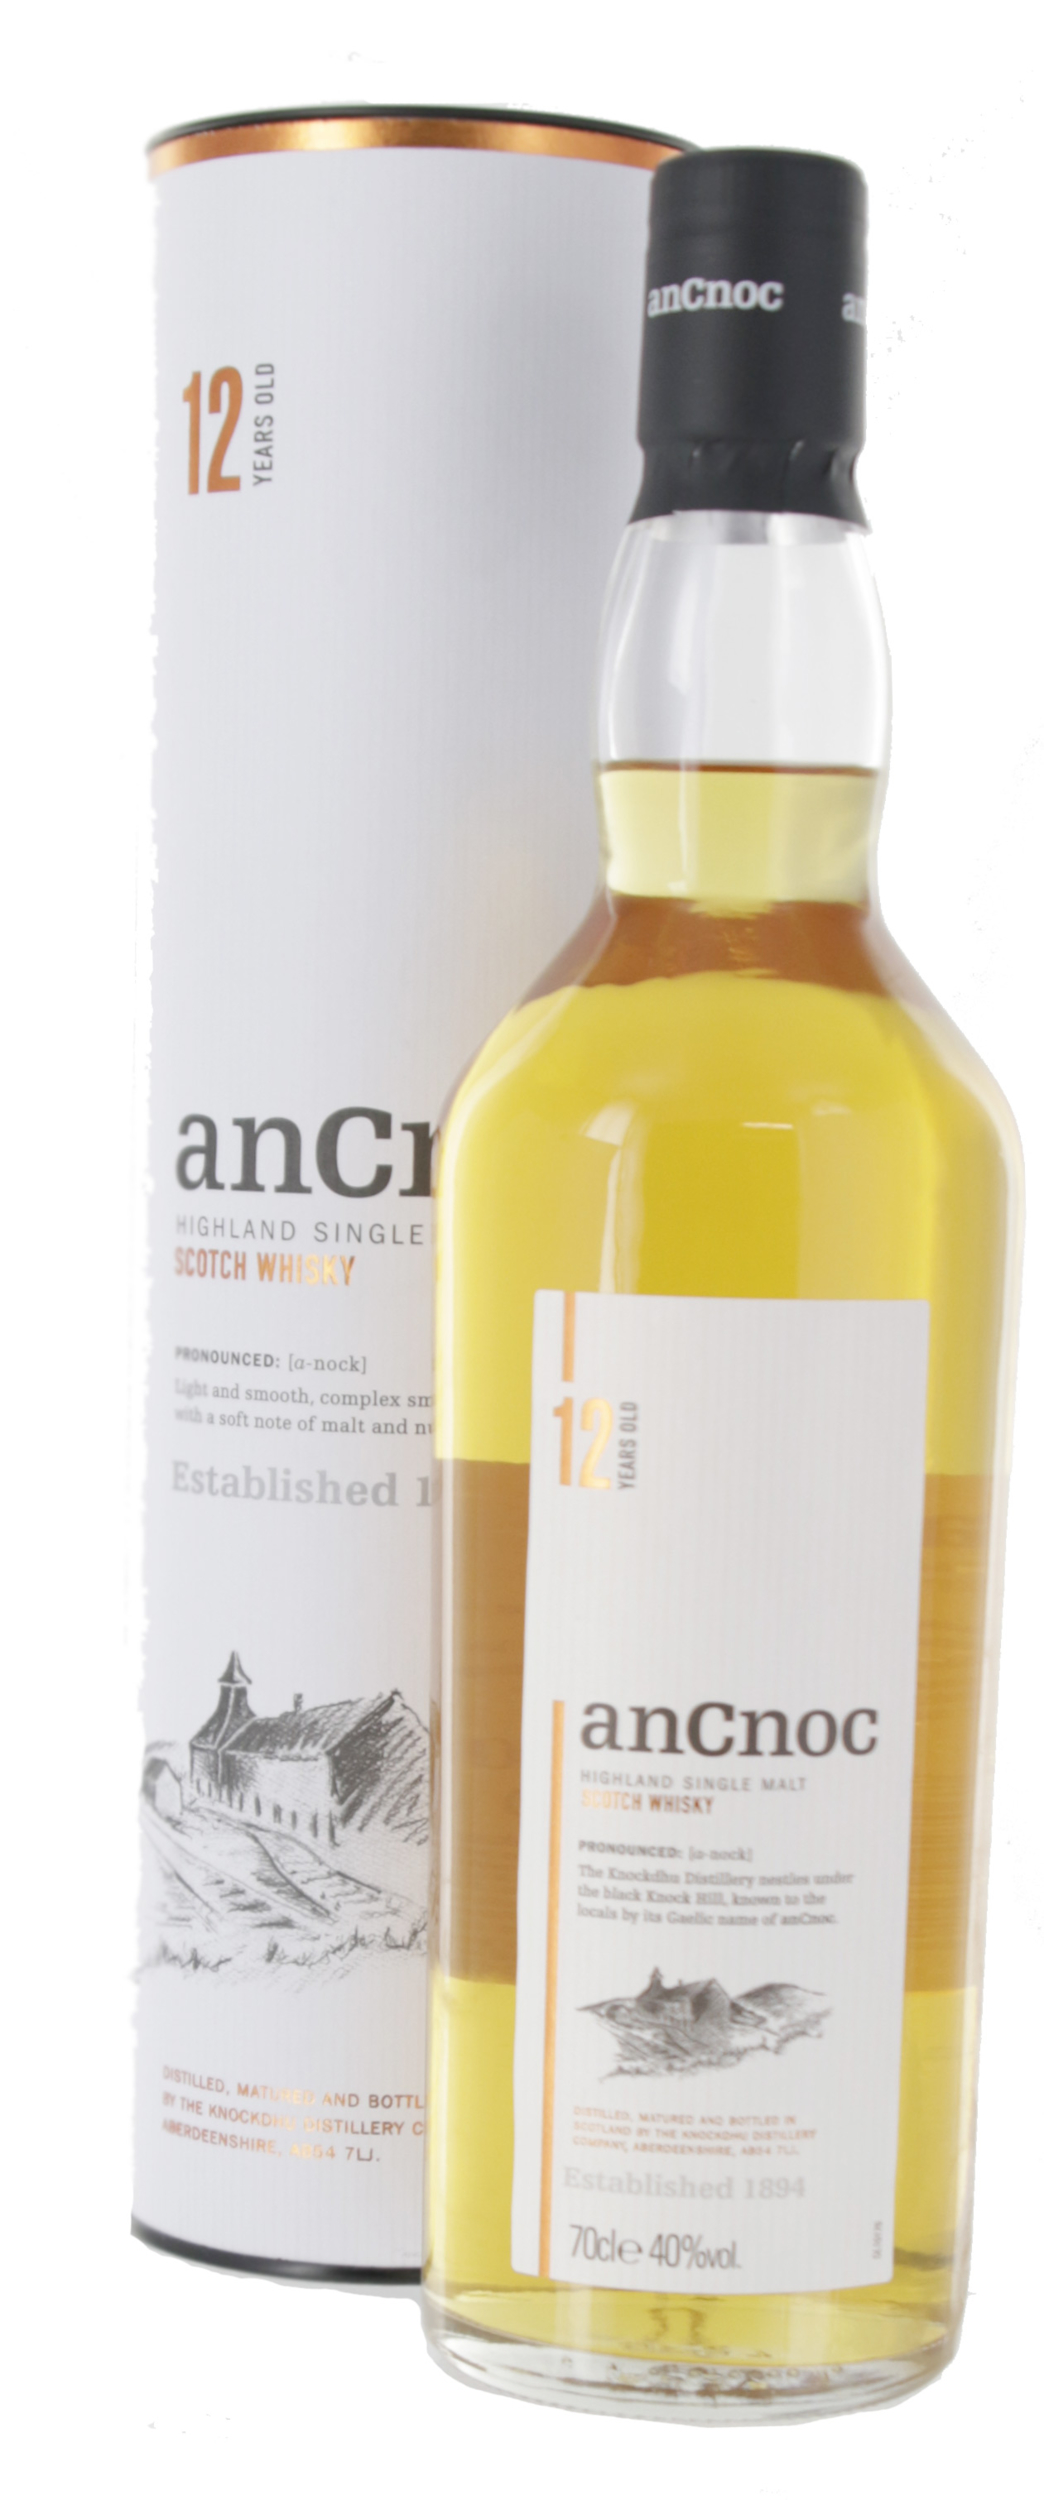 Ancnoc 12 ans - Ecosse Highlands - Single Malt - Non tourbé - 70cl - 40°